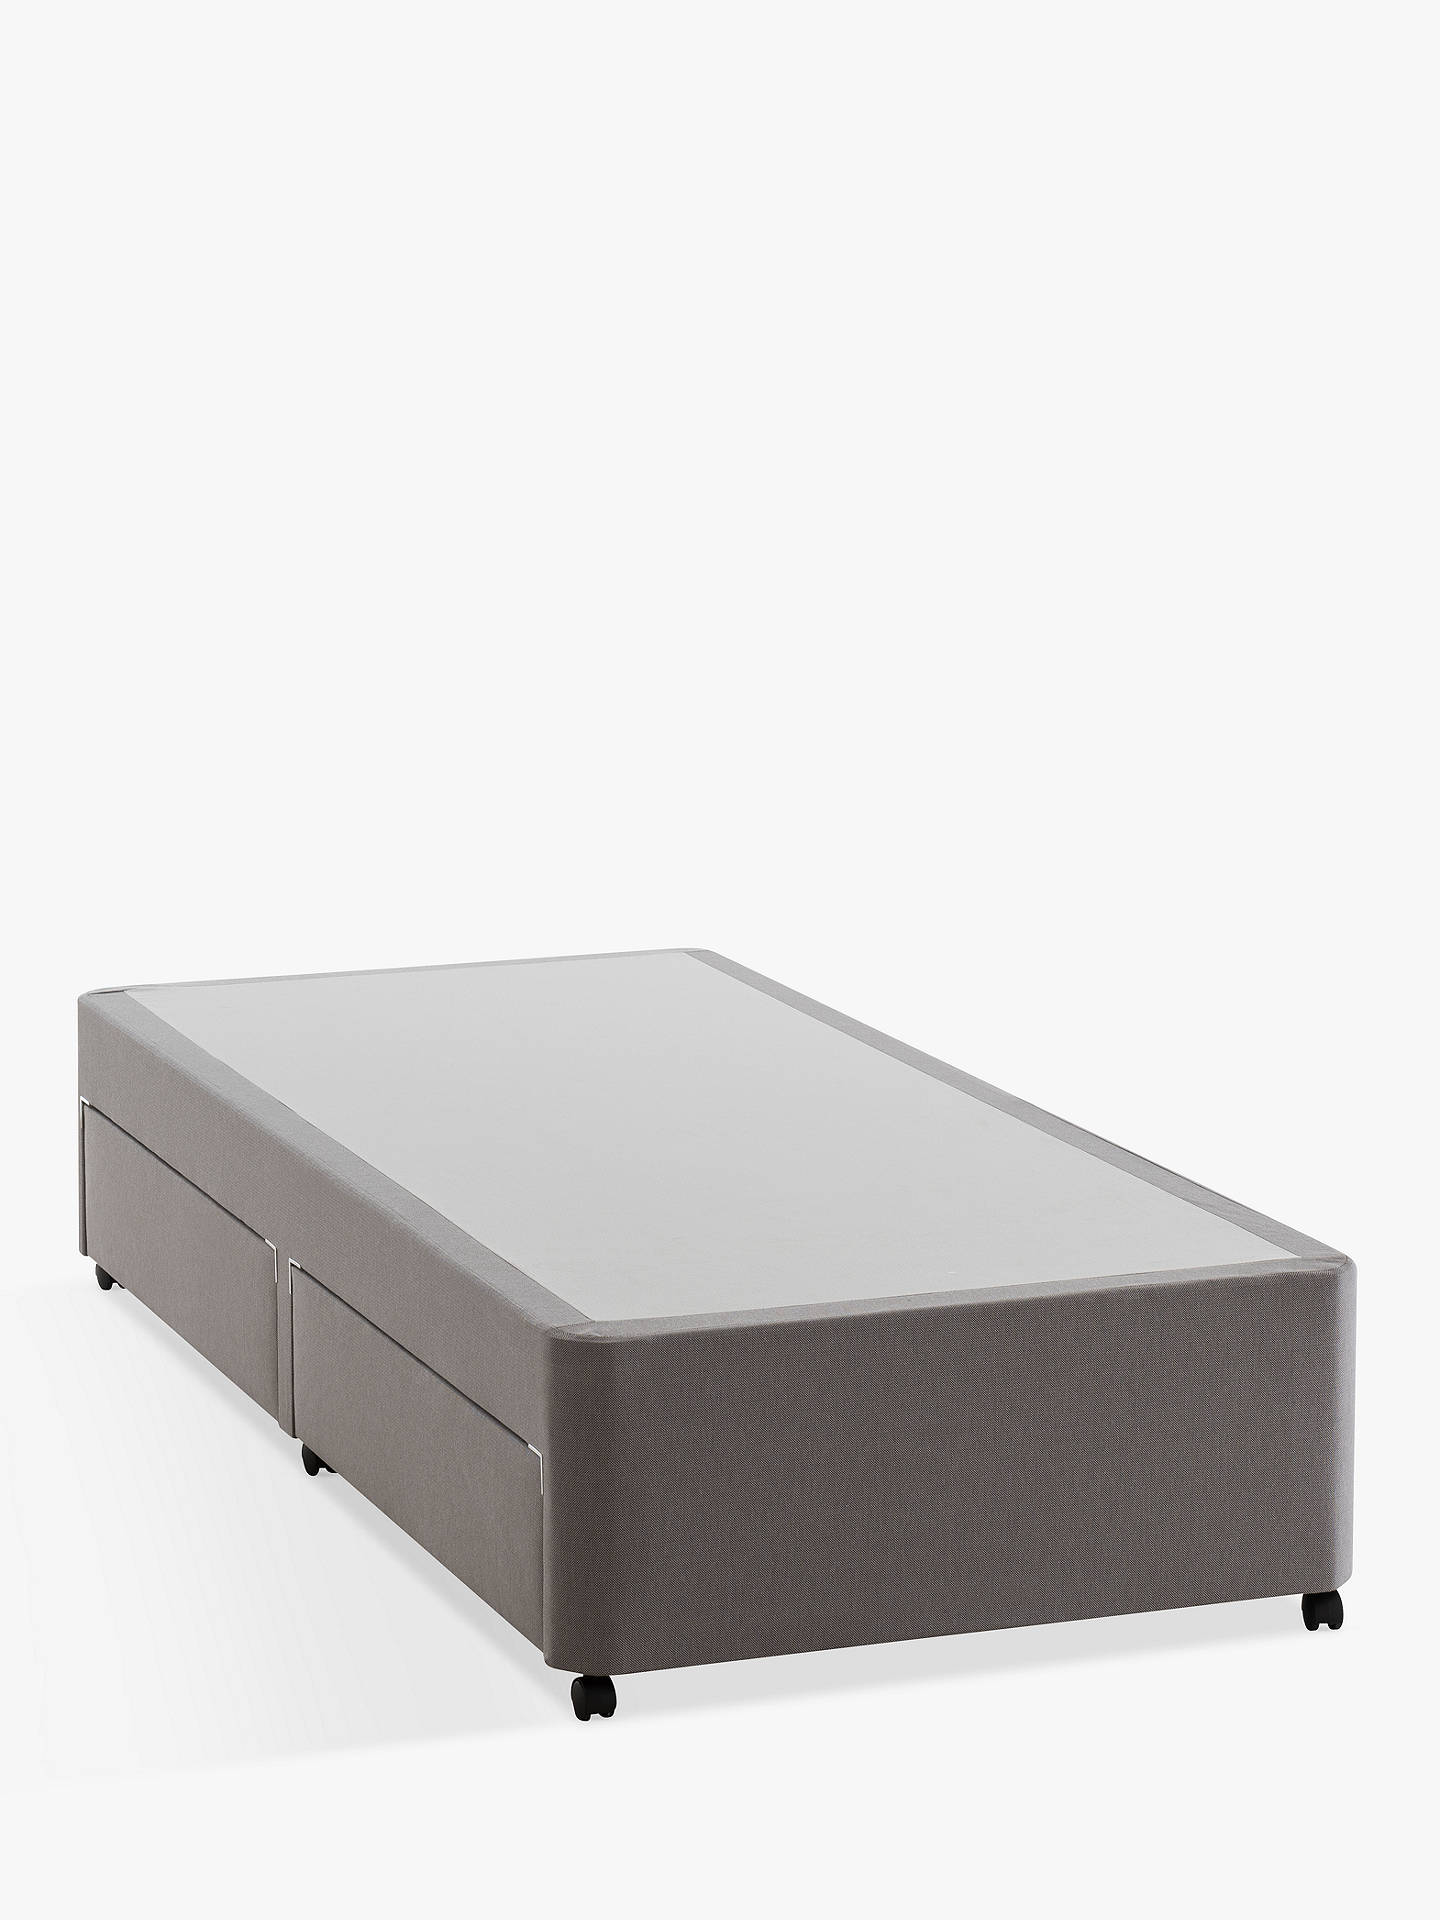 BuySilentnight Non Sprung 2 Drawer Divan Storage Bed, Single Online at johnlewis.com